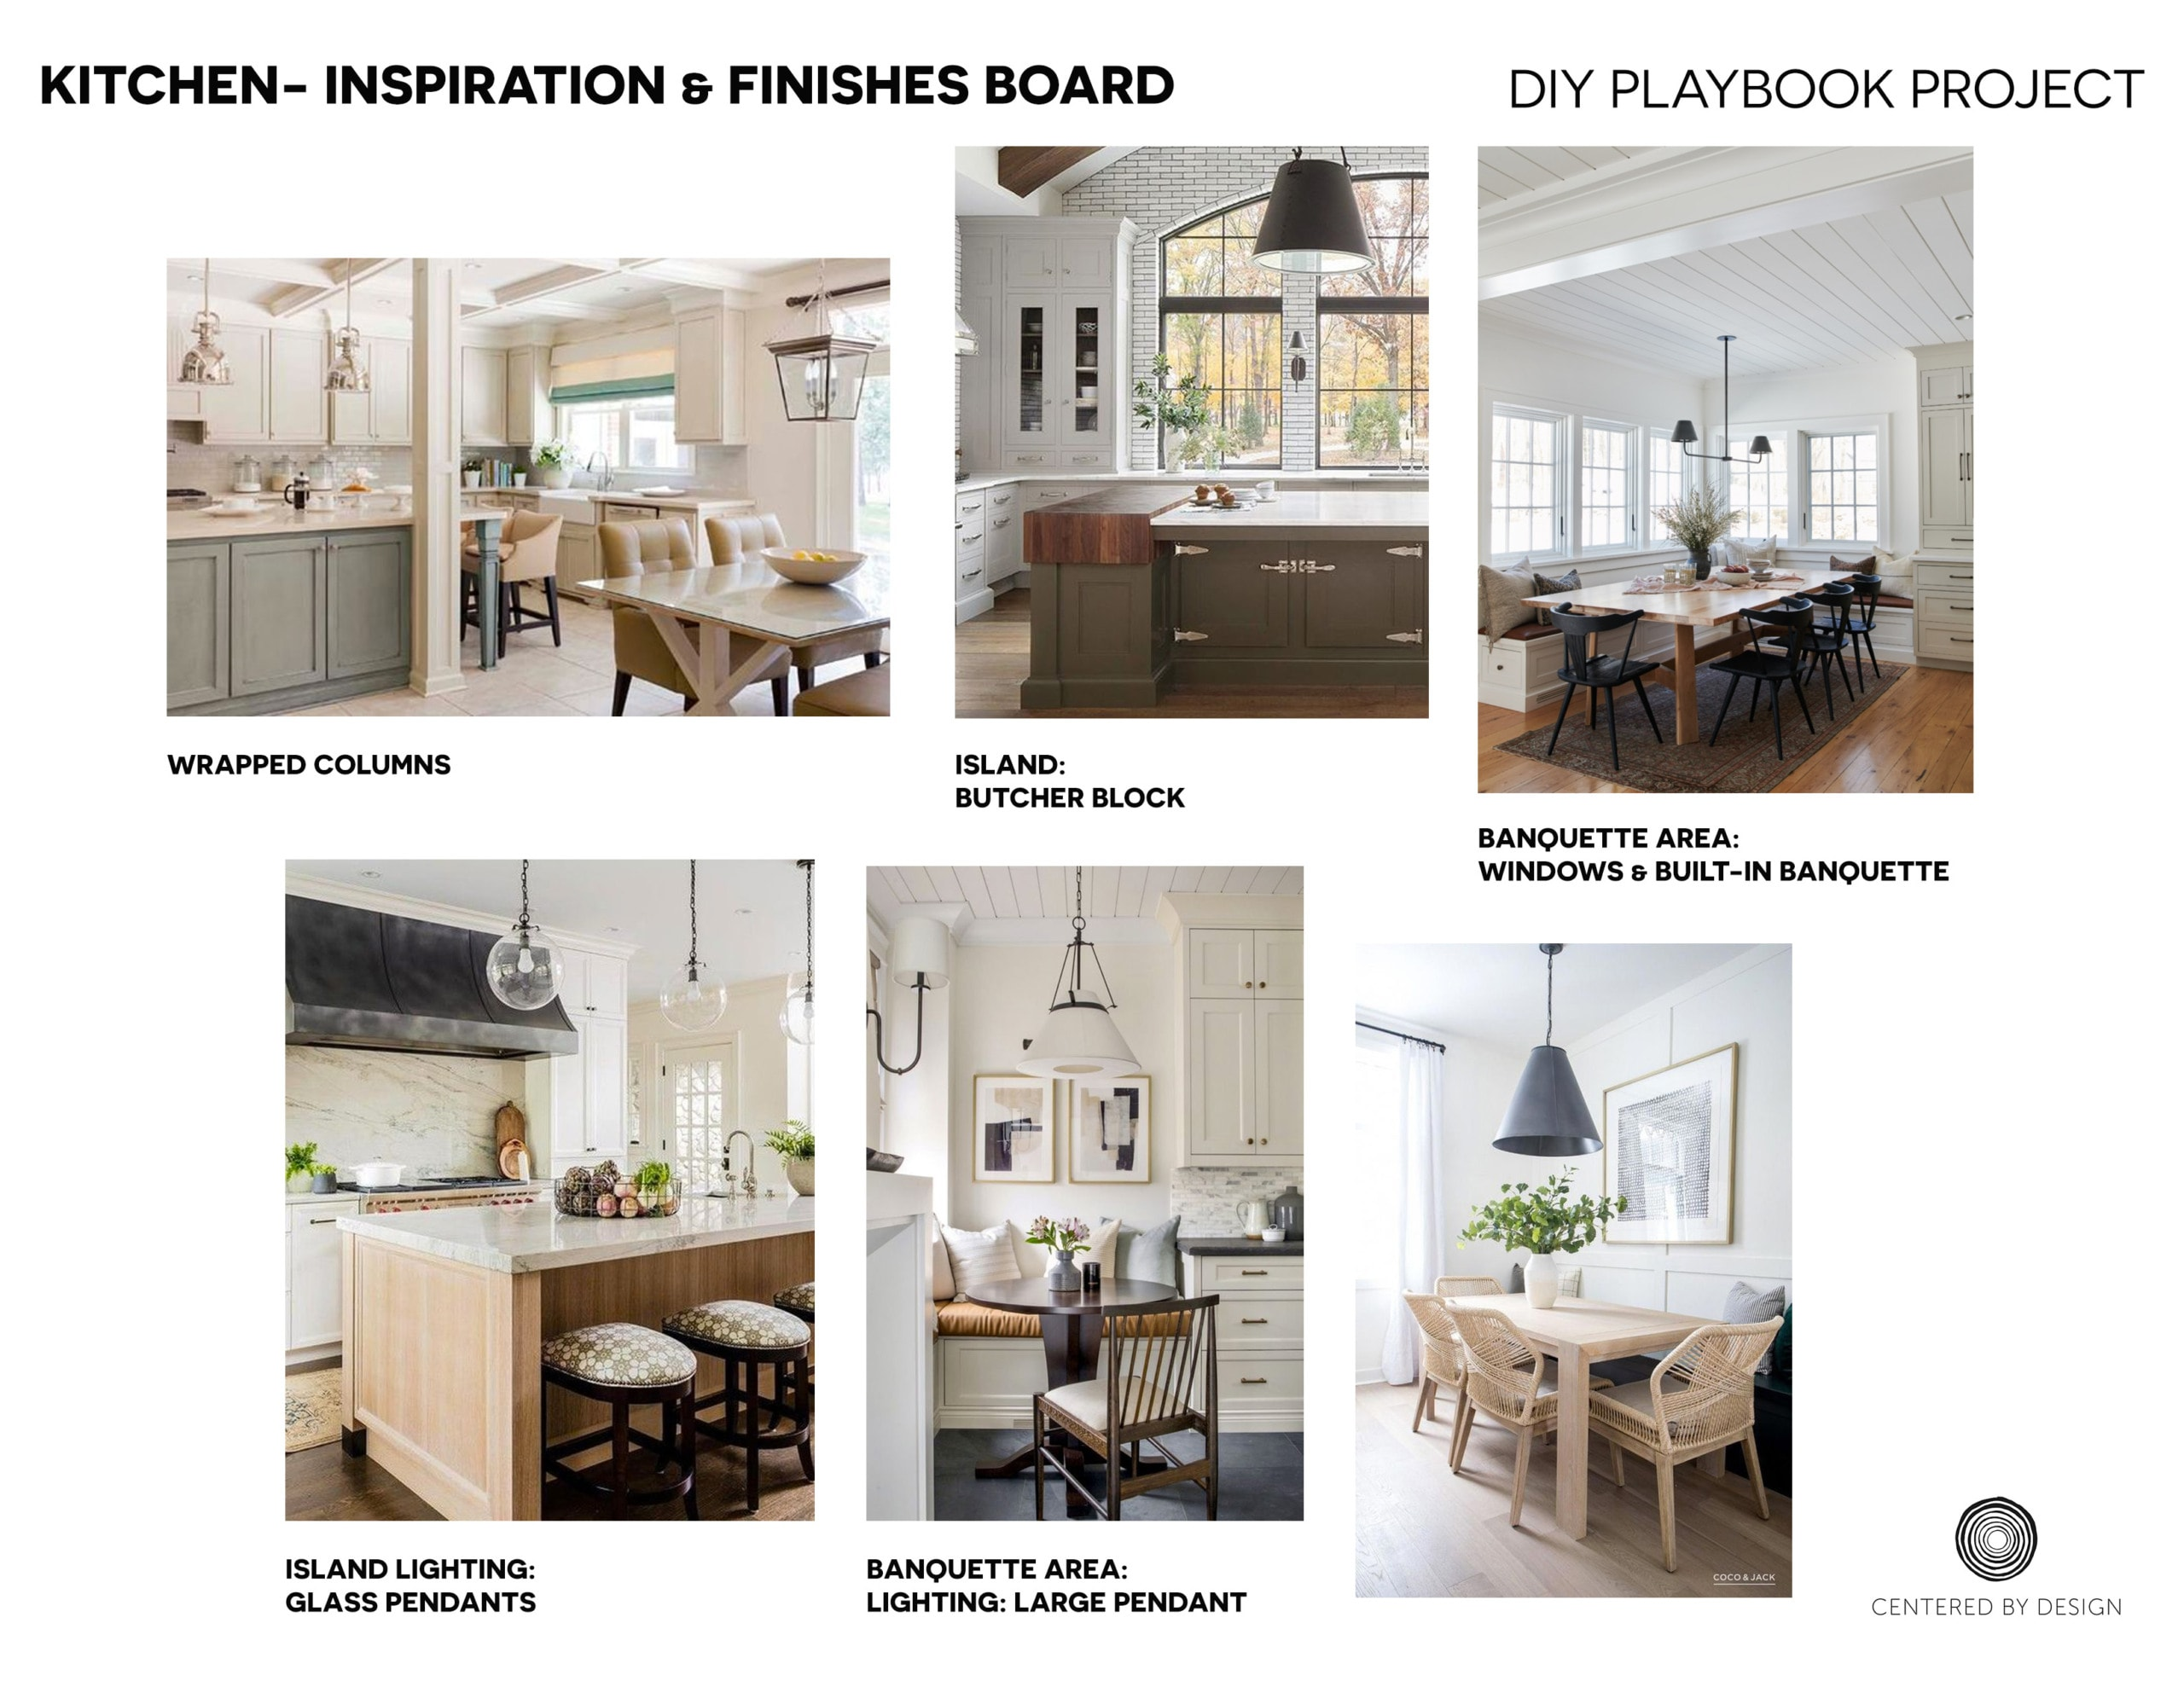 Kitchen design plans from Centered by Design